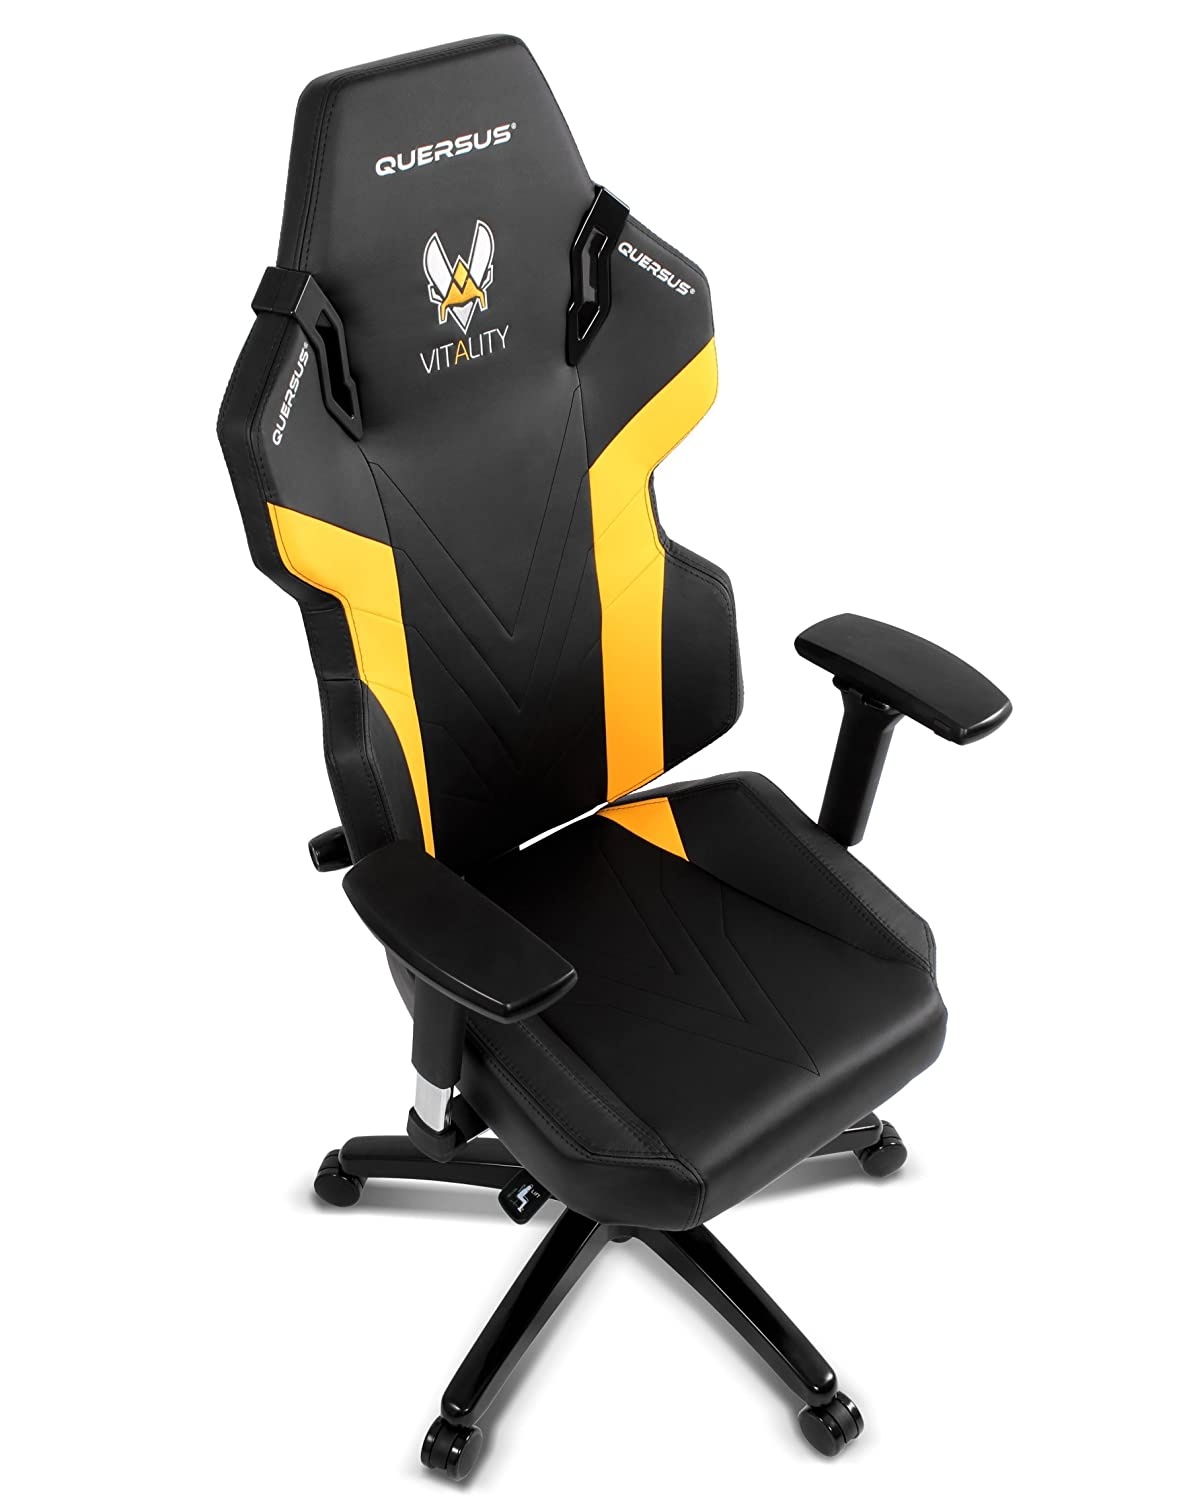 Magnificent Quersus Vitality Gaming Chair Vitality Evos Executive Office Machost Co Dining Chair Design Ideas Machostcouk